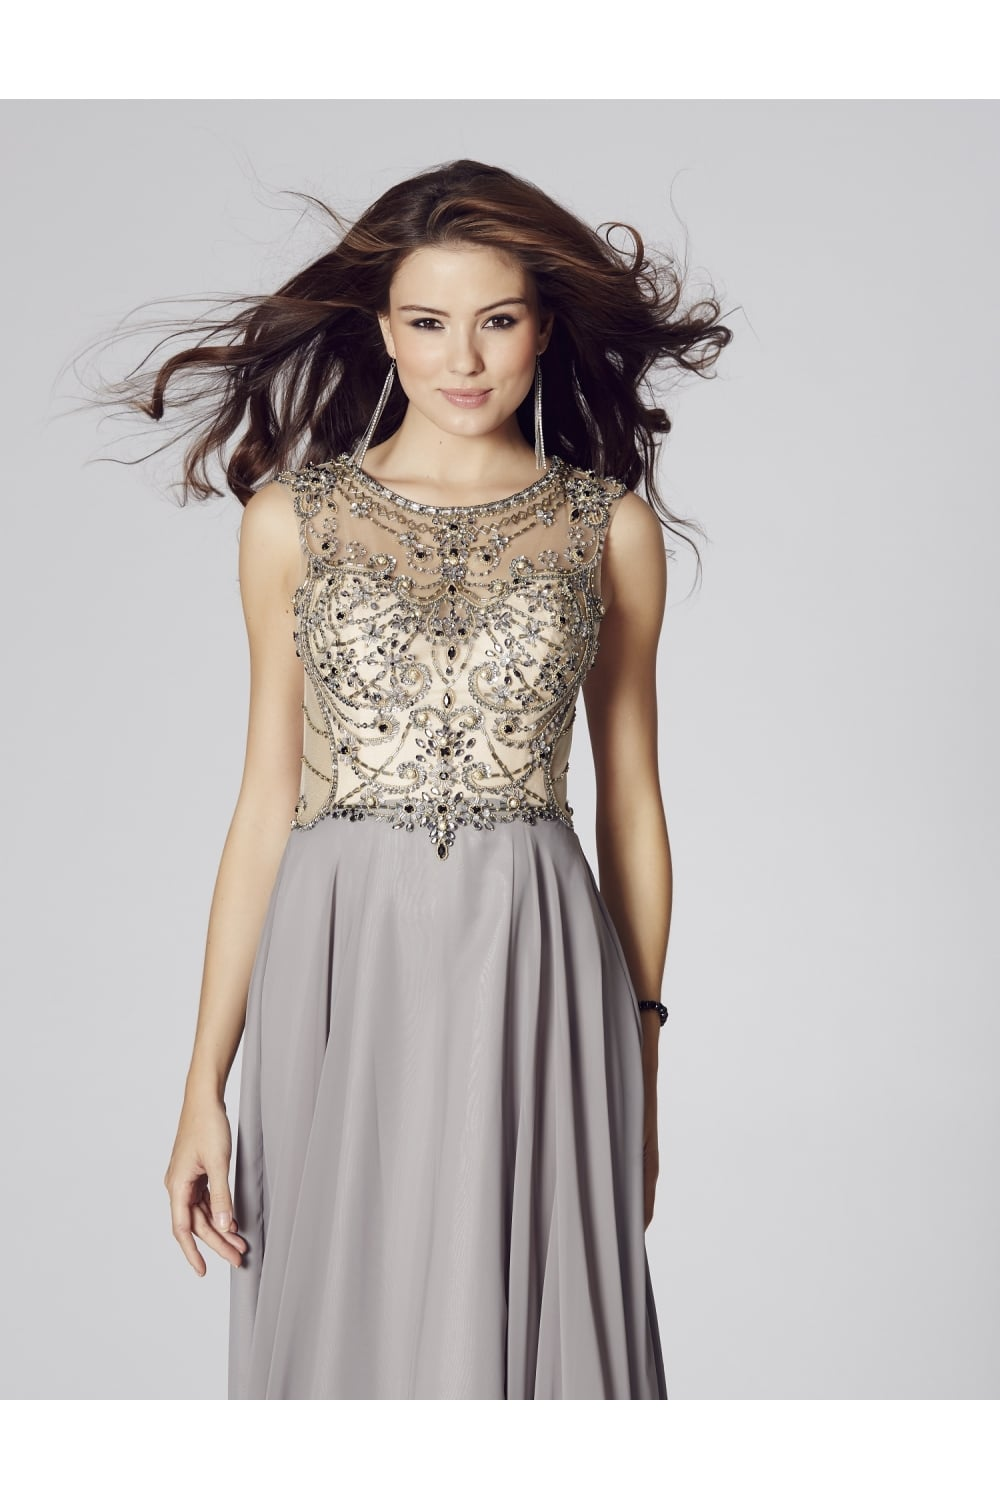 Tiffany Illusion Prom Kendra Prom Dress